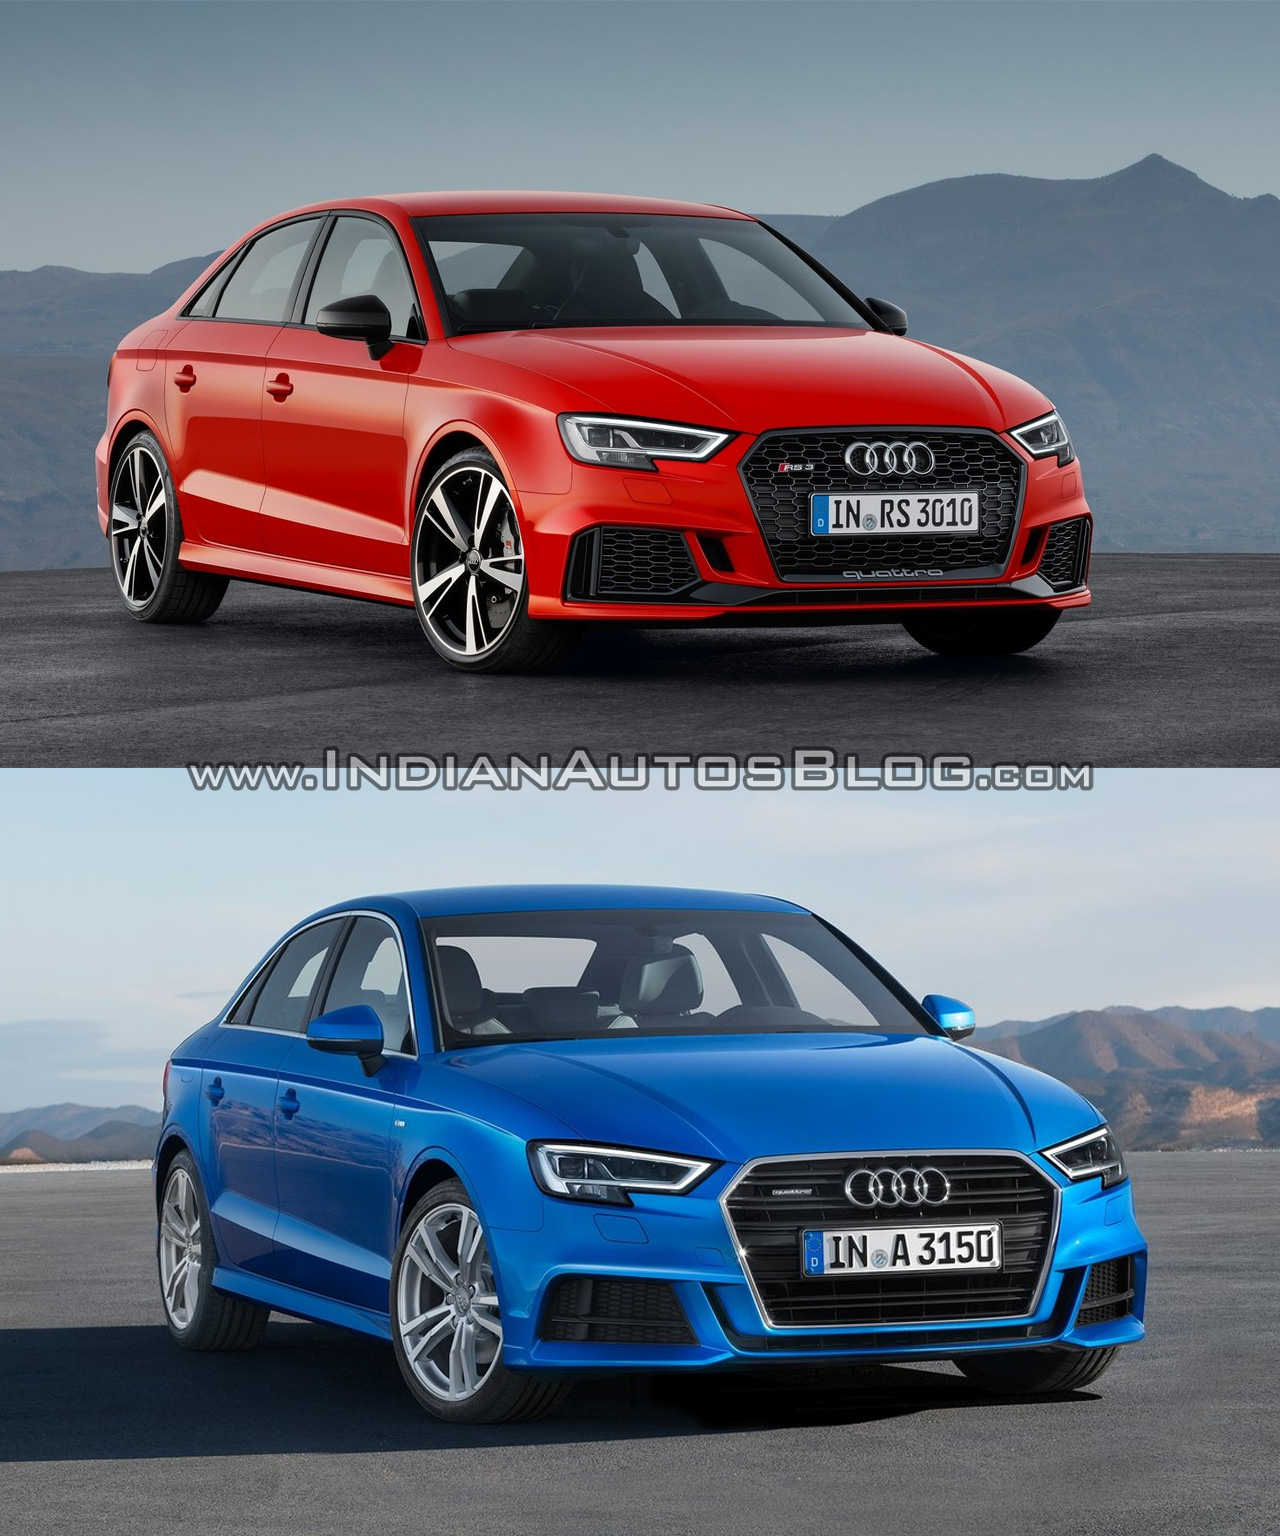 Audi RS3 sedan vs. Audi A3 sedan - In Images